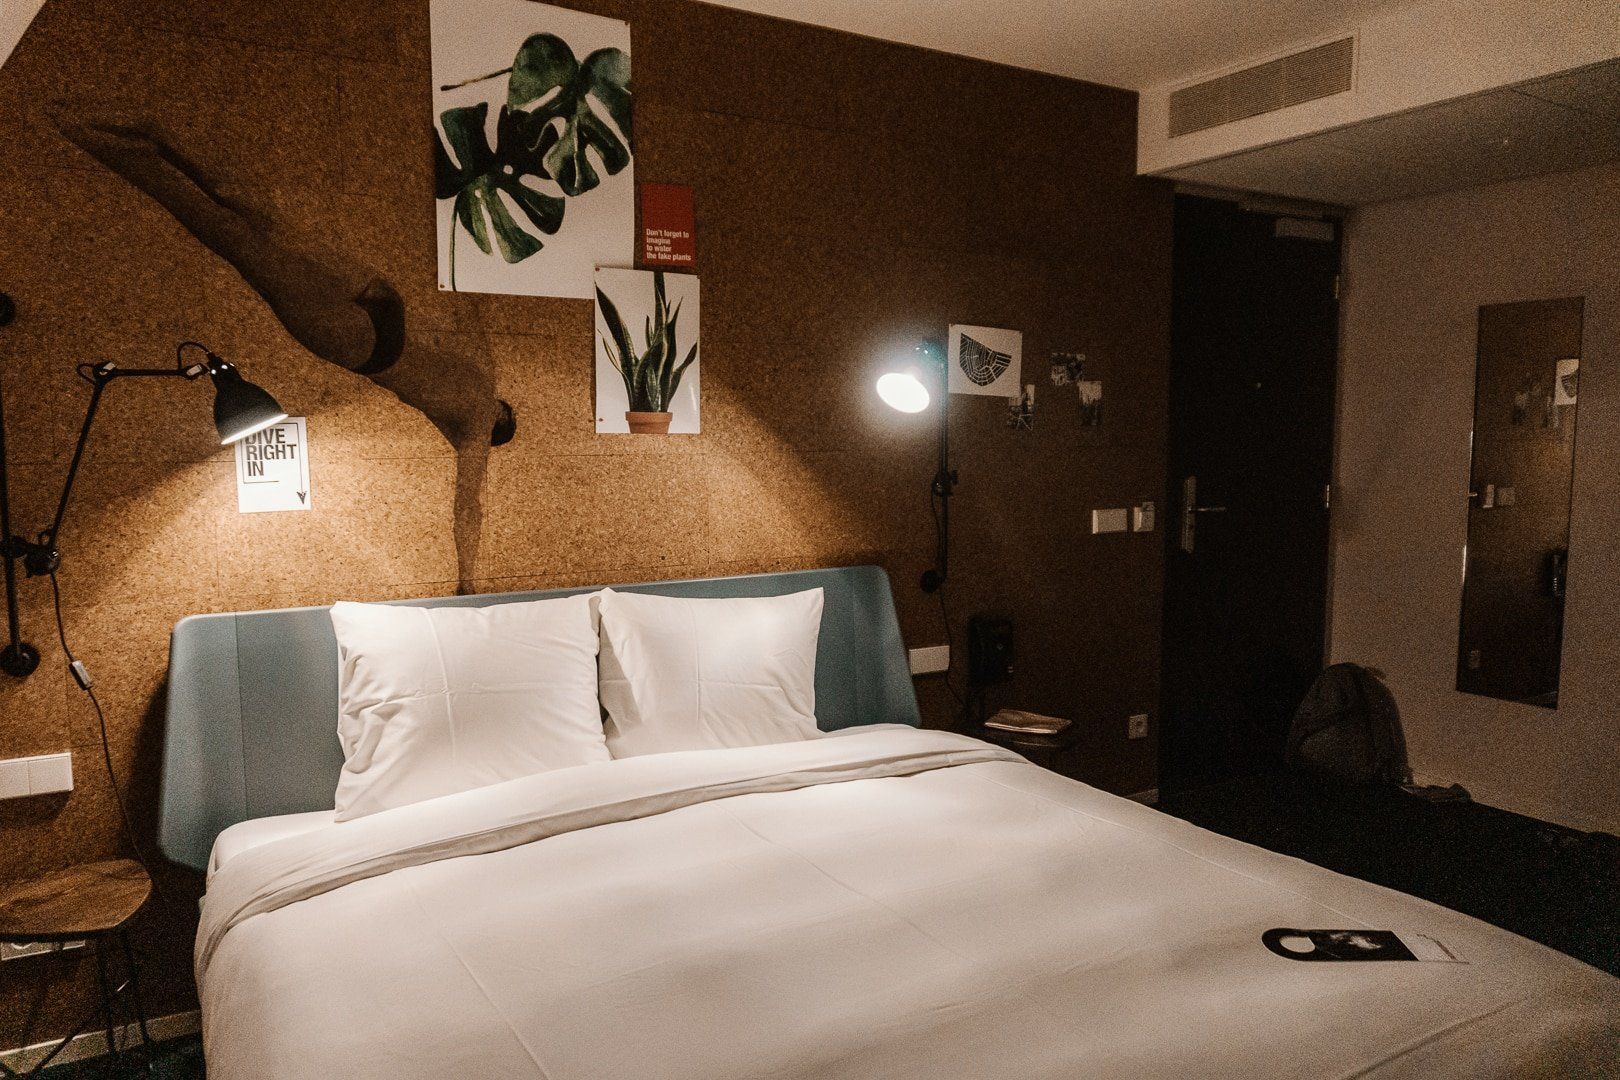 A picture of the bed and decor in The Tire Station hotel, located in Oud-West.